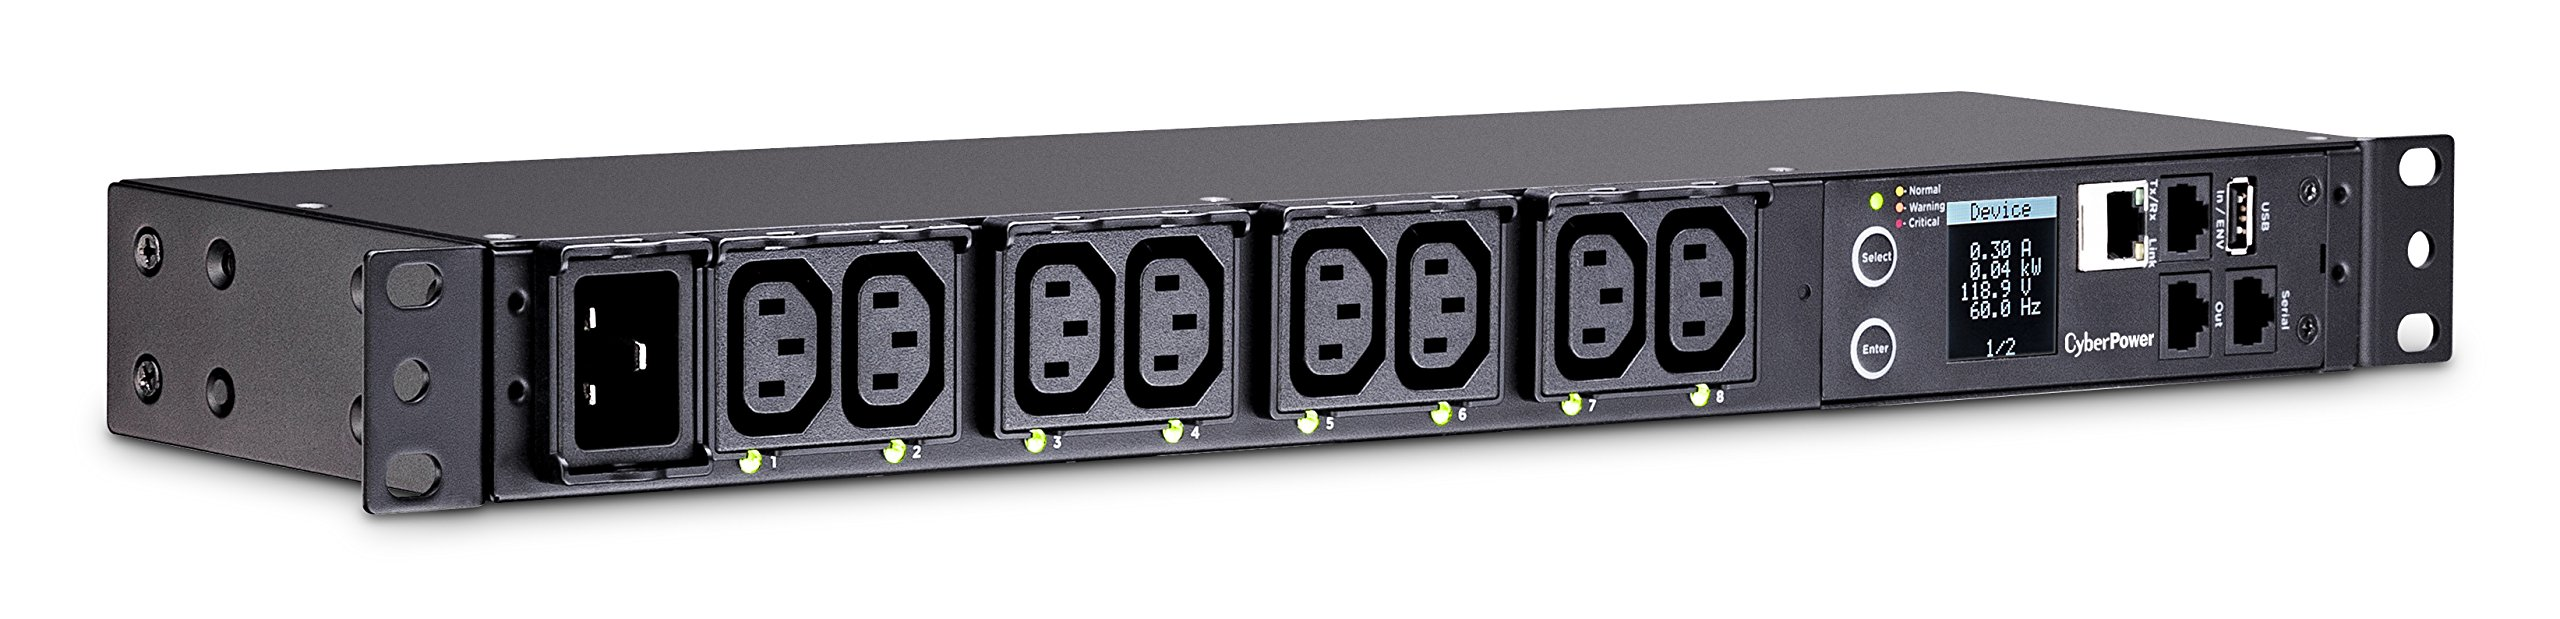 CyberPower PDU81005 Switched Metered-By-Outlet PDU, 100-240V/20A, 8 Outlets, 1U Rackmount